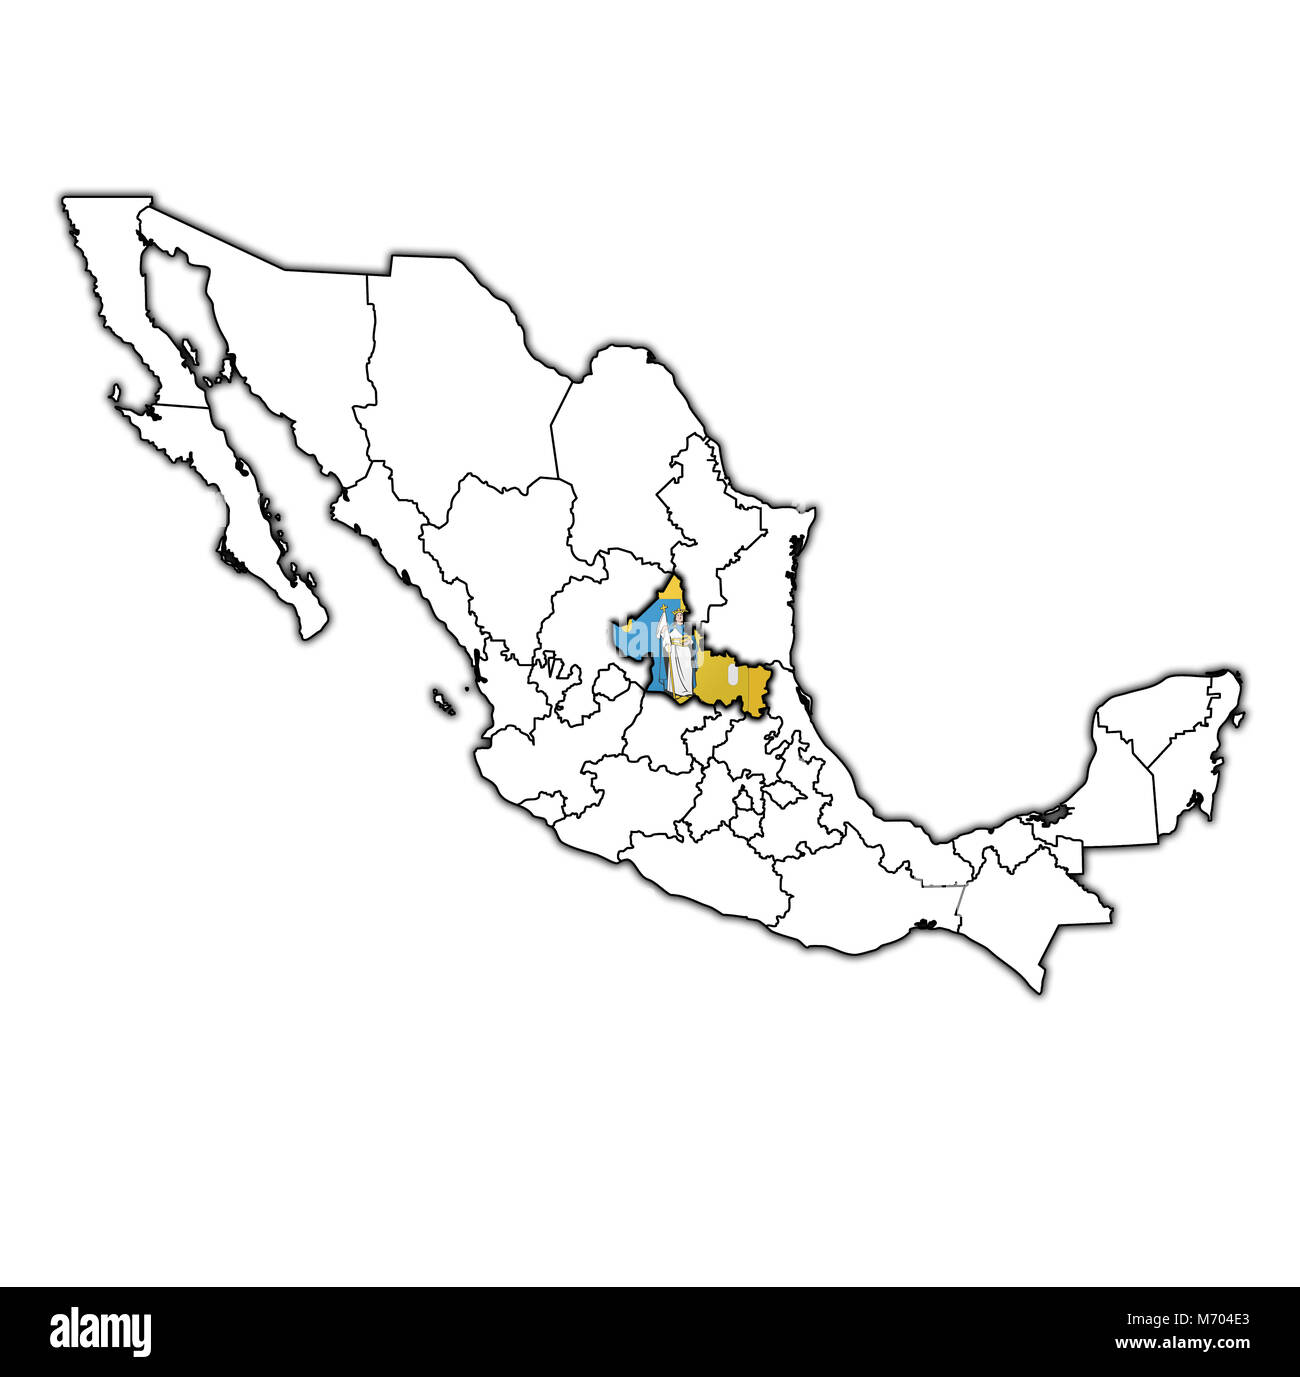 emblem of San Luis Potosi state on map with administrative divisions and borders of Mexico - Stock Image